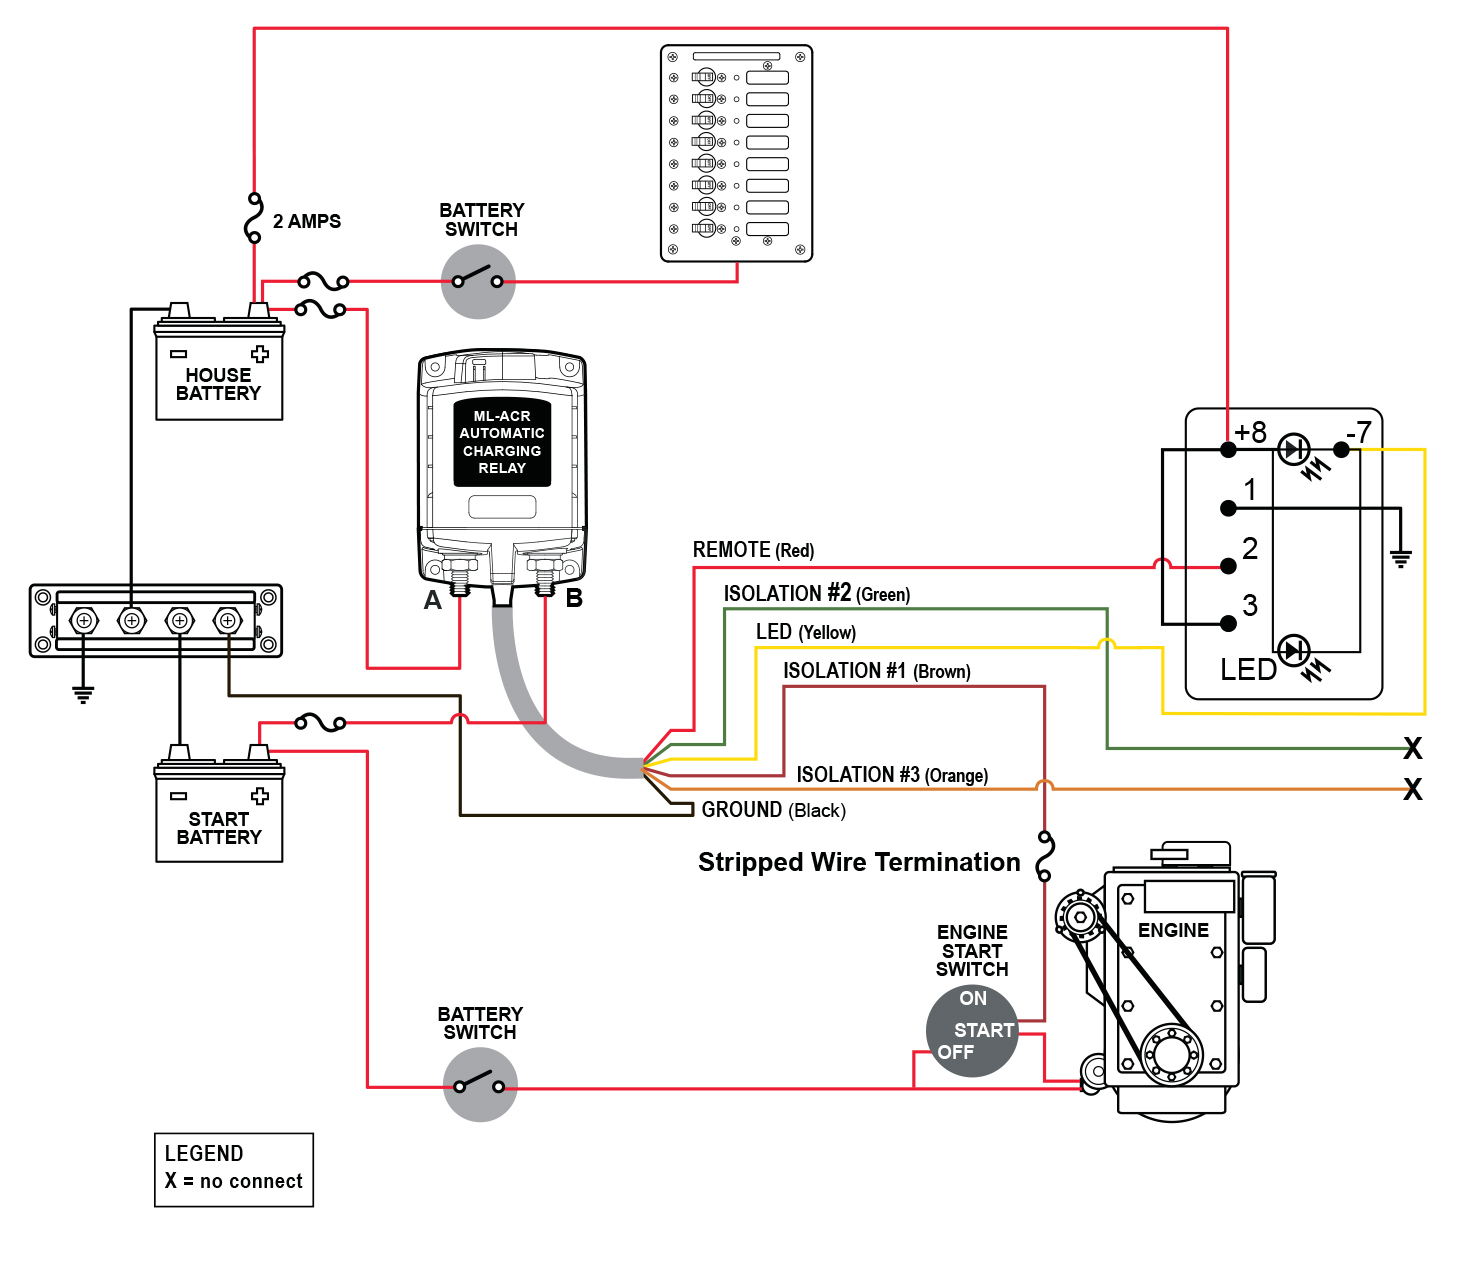 blue sea ml acr automatic charging relay wiring diagram  [ 1479 x 1267 Pixel ]